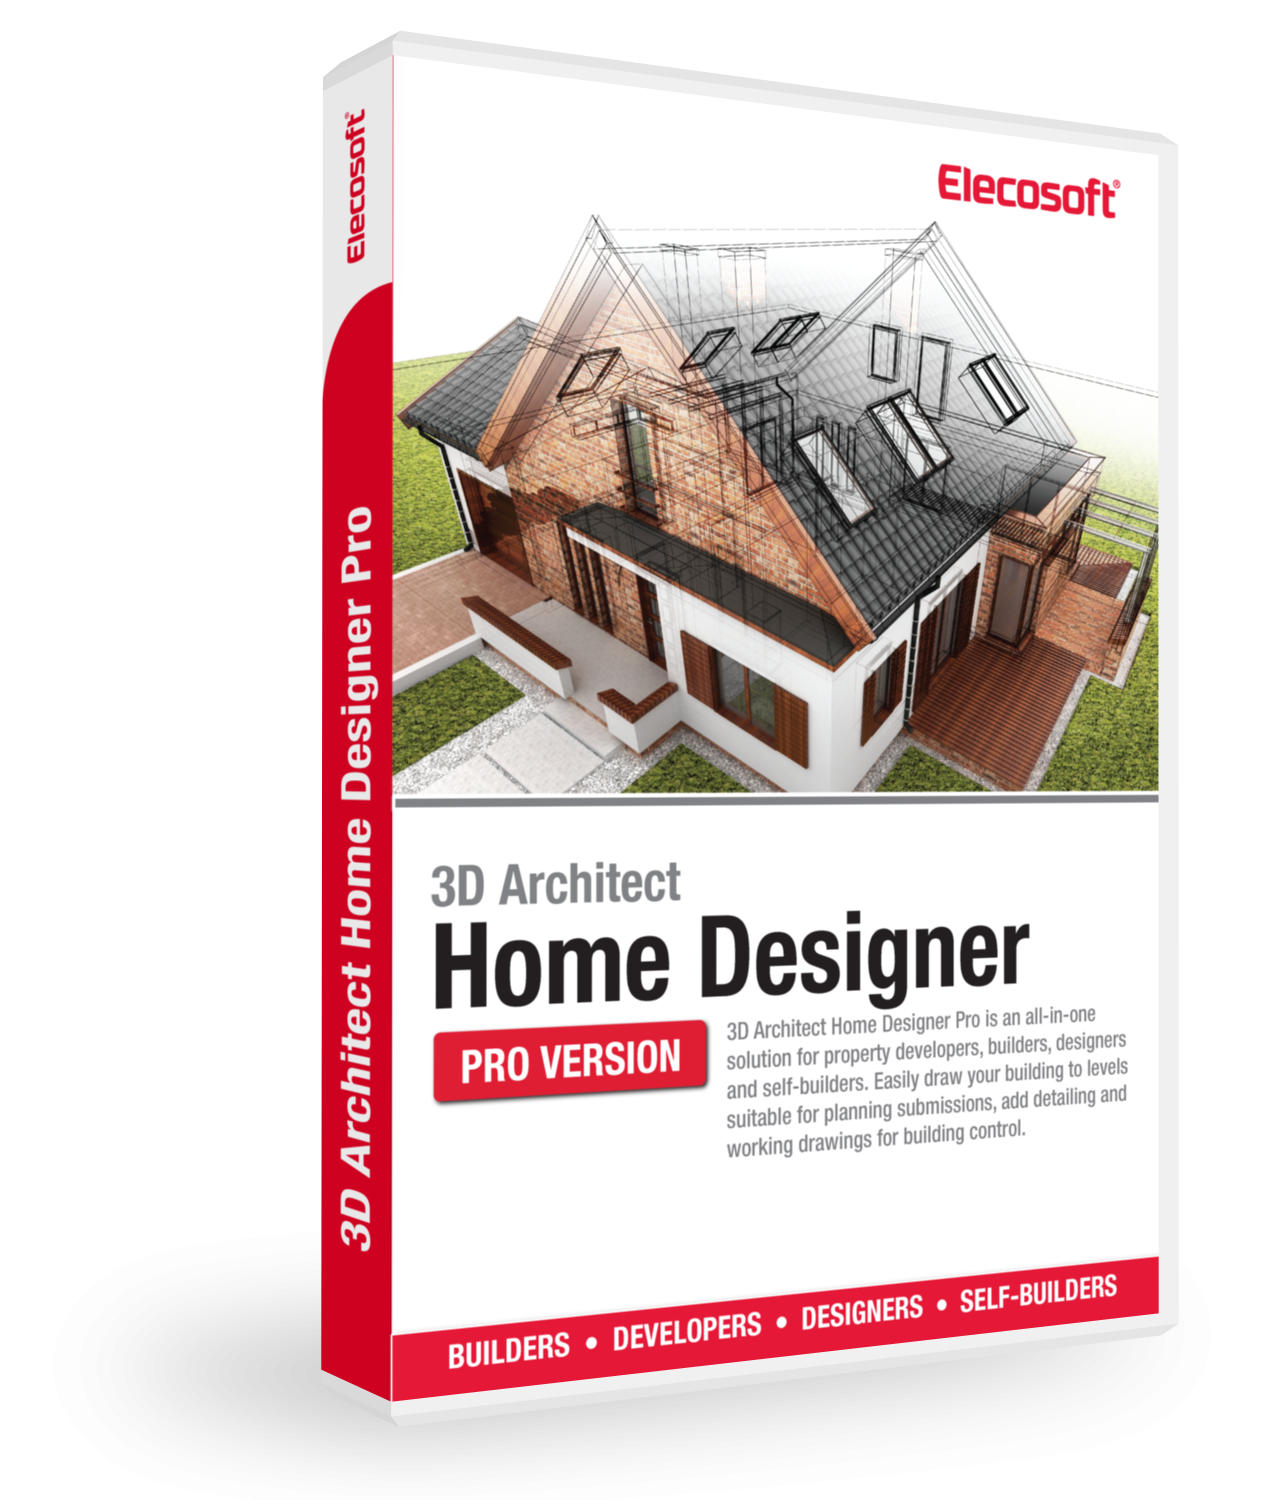 3d Architect Home Designer Pro Software Elecosoft